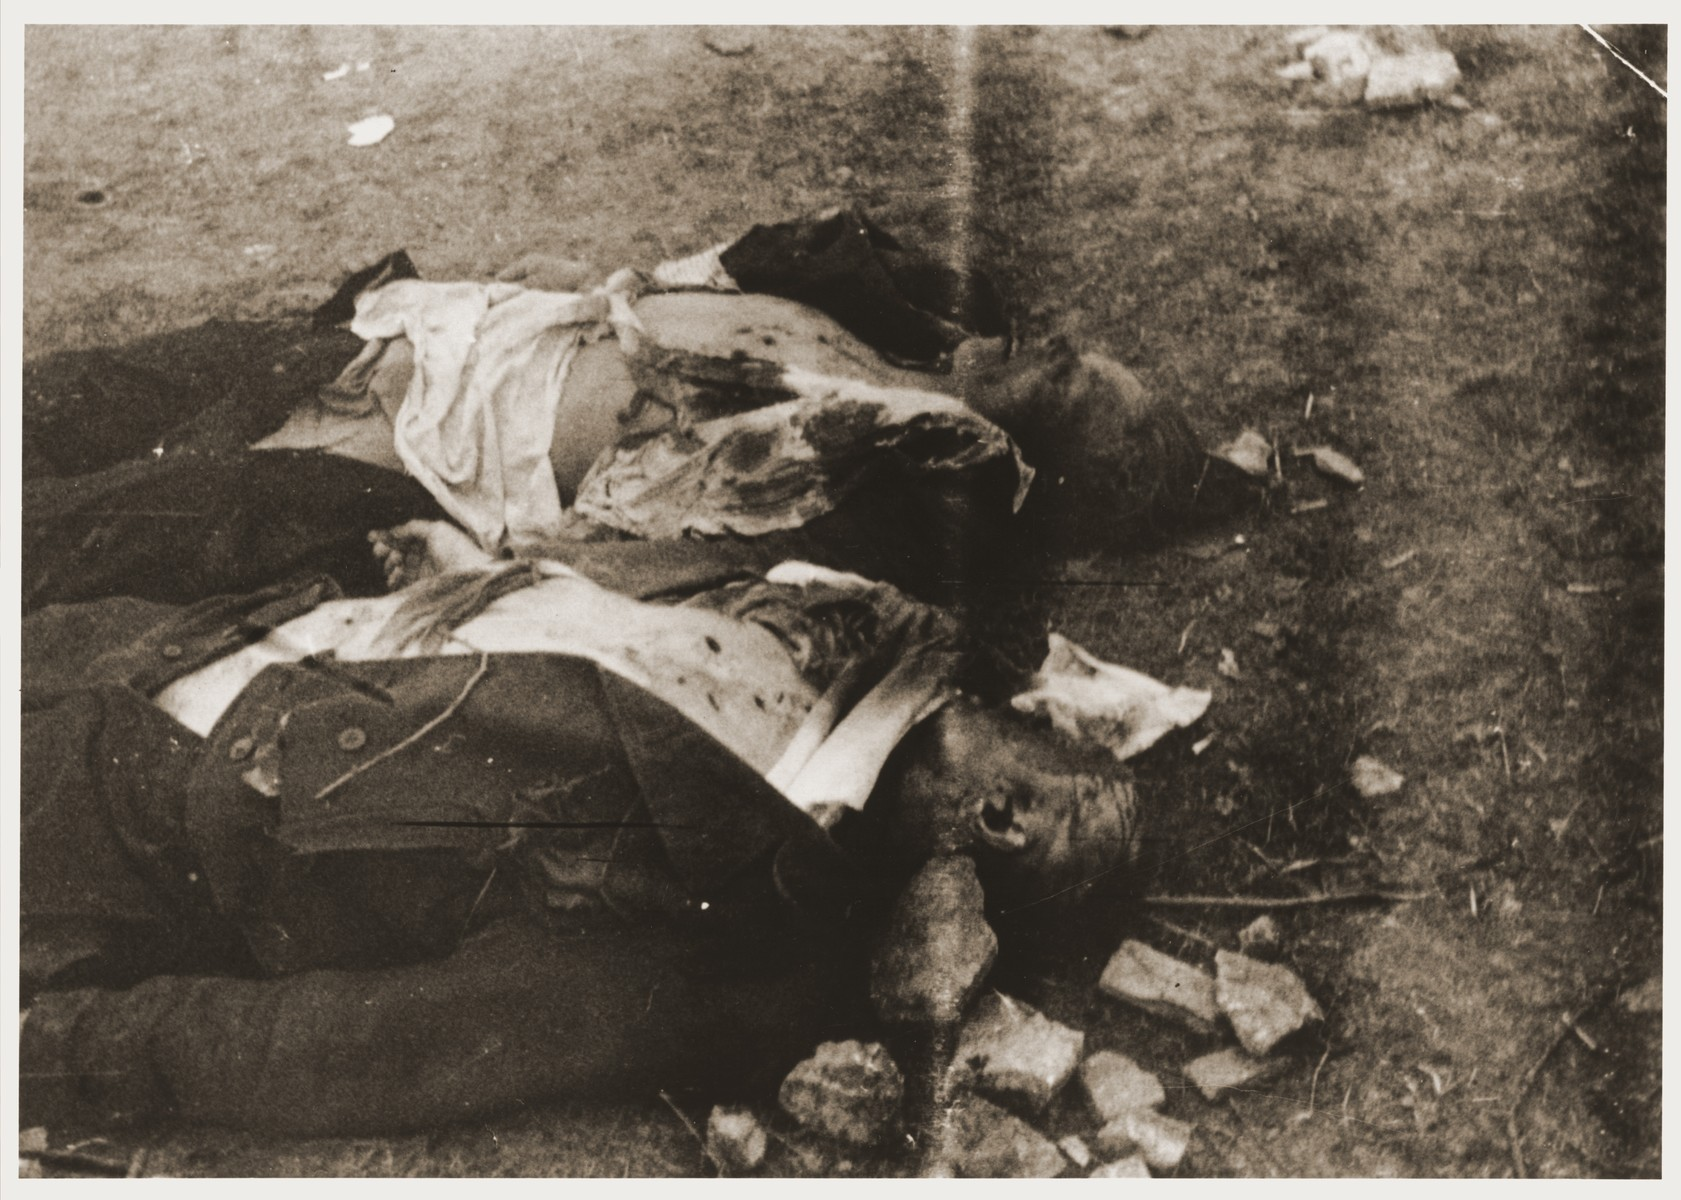 The corpses of two German guards killed by inmates during the liberation of Ohrdruf.    The photographer was an American soldier serving in the 69th Infantry Division, which participated in the liberation of Ohrdruf.